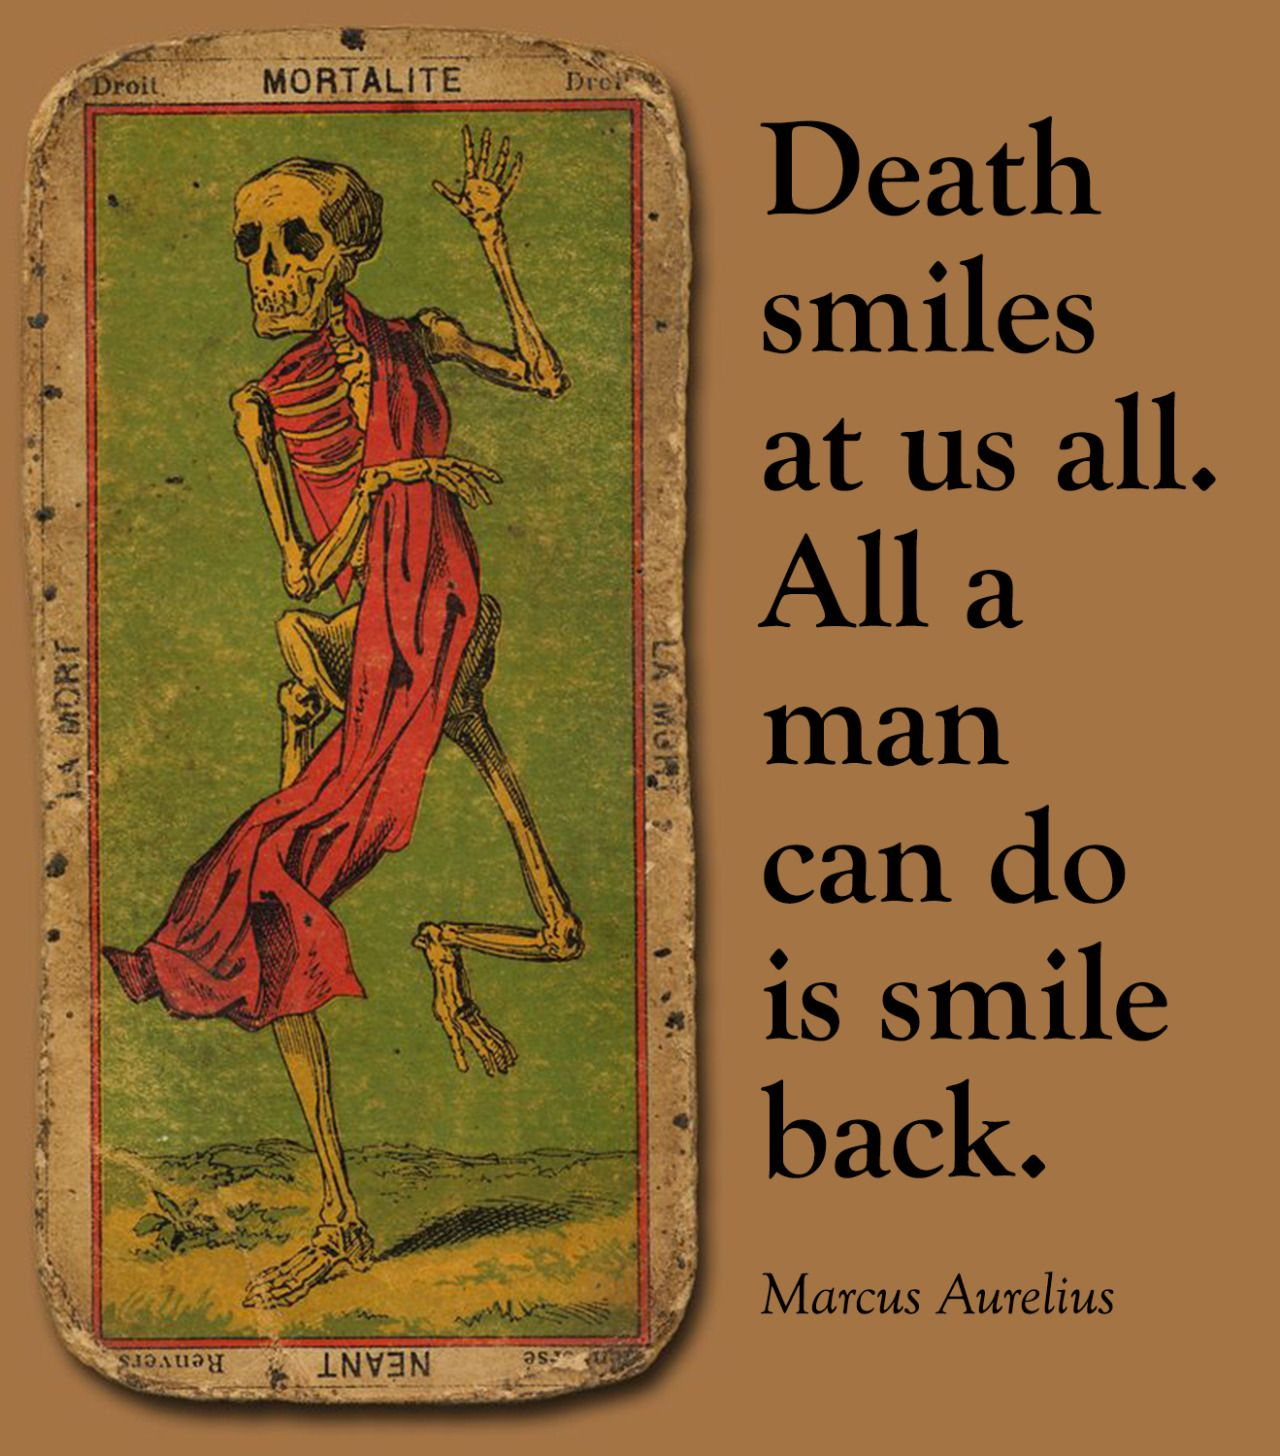 Smile Back Thought Food Pinterest Quotes Marcus Aurelius